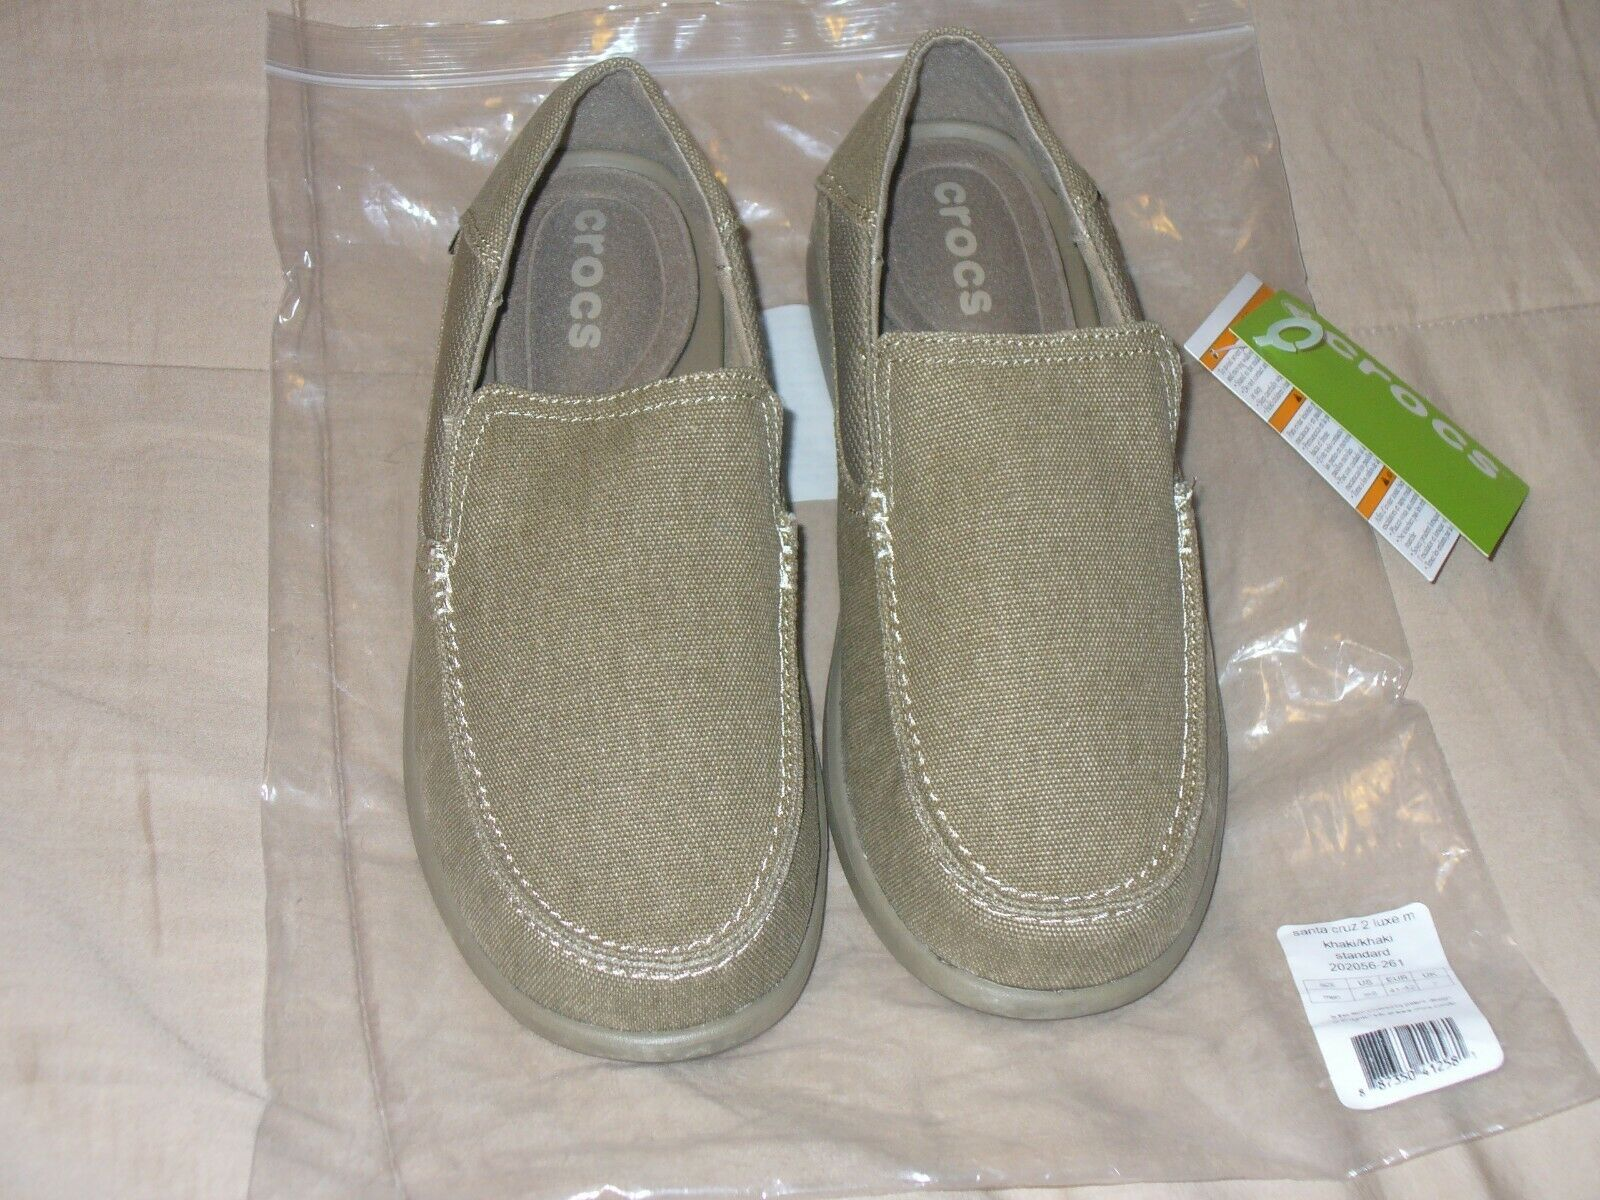 Crocs Santa Cruz 2 Luxe Memory Foam Loafer Slip on shoes KHAKI Mens Size 8M NWT